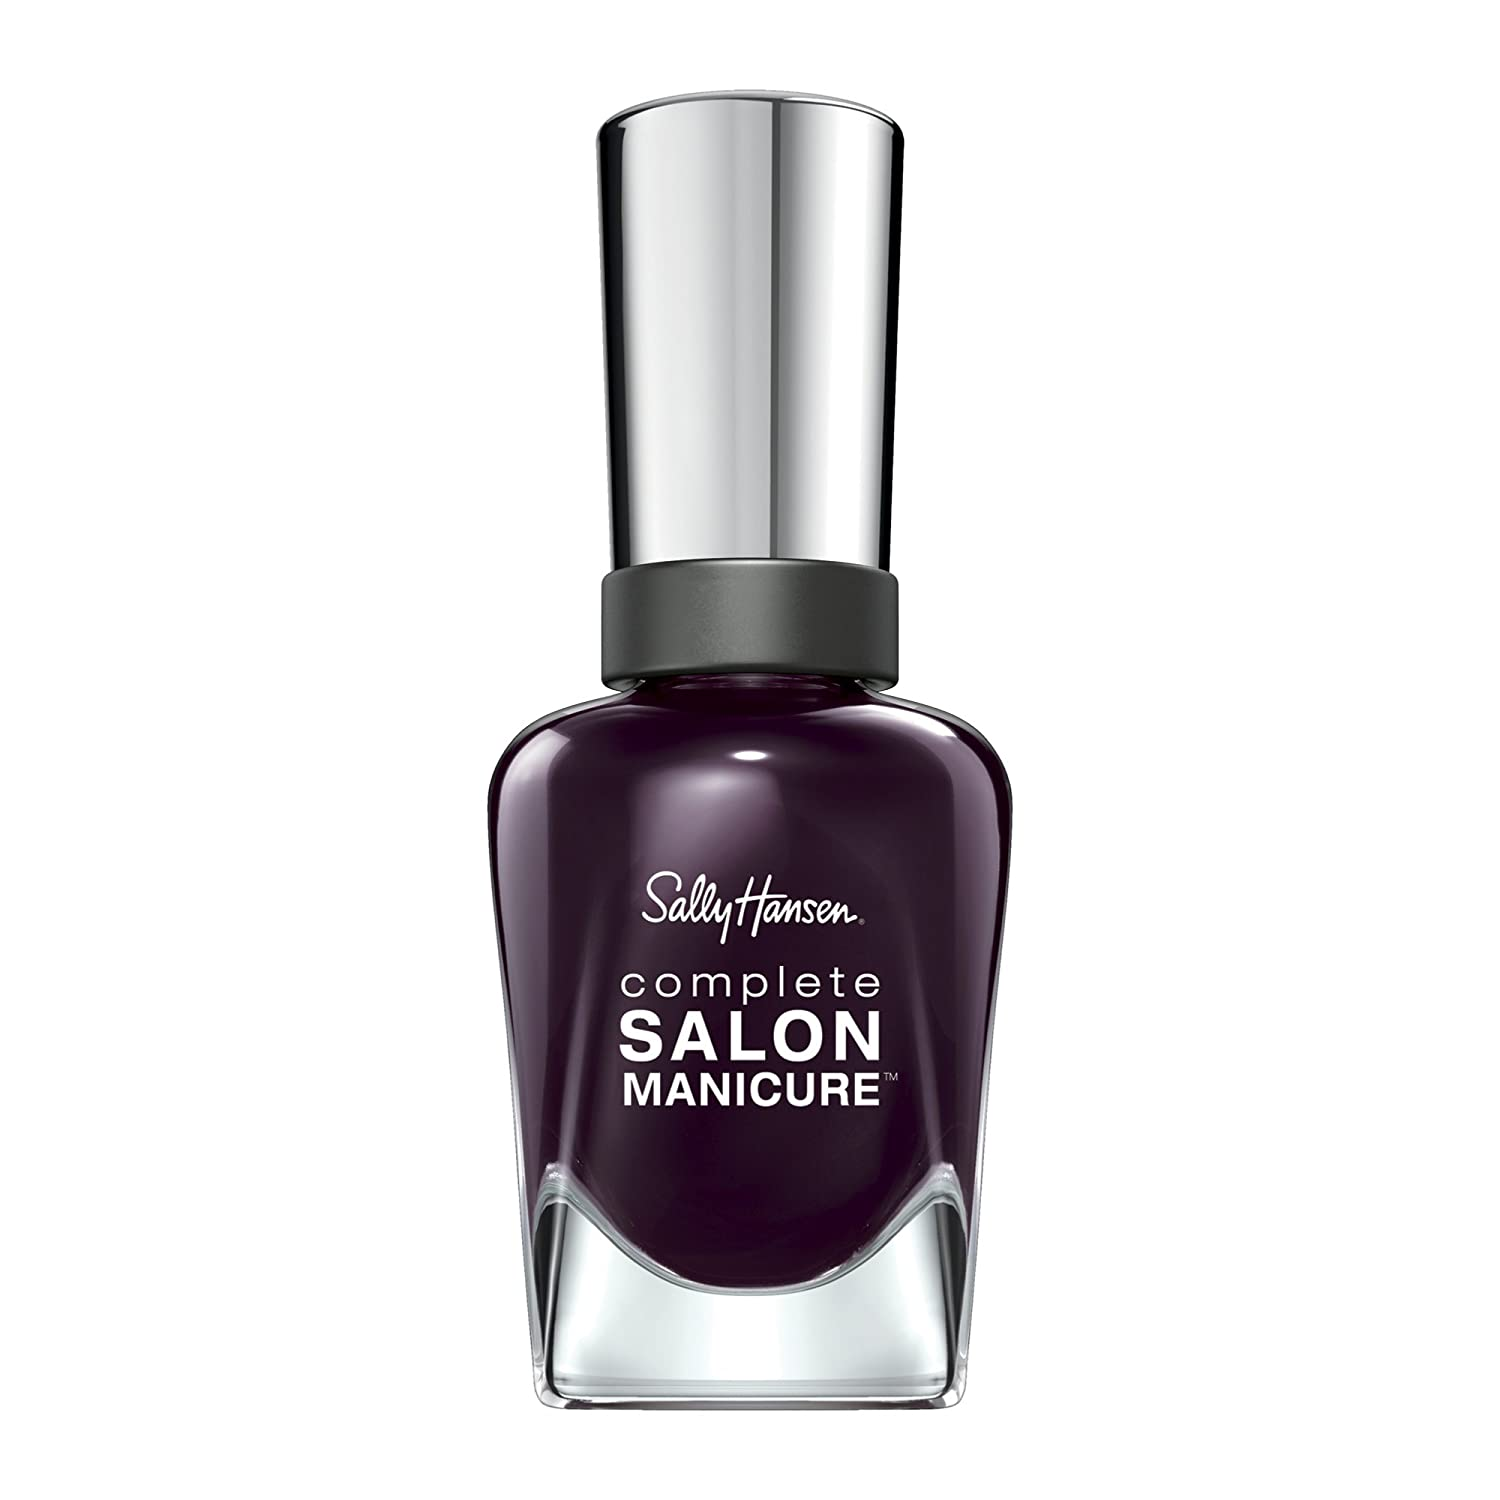 Sally Hansen - Complete Salon Manicure Nail Color, Purples, Pack of 1